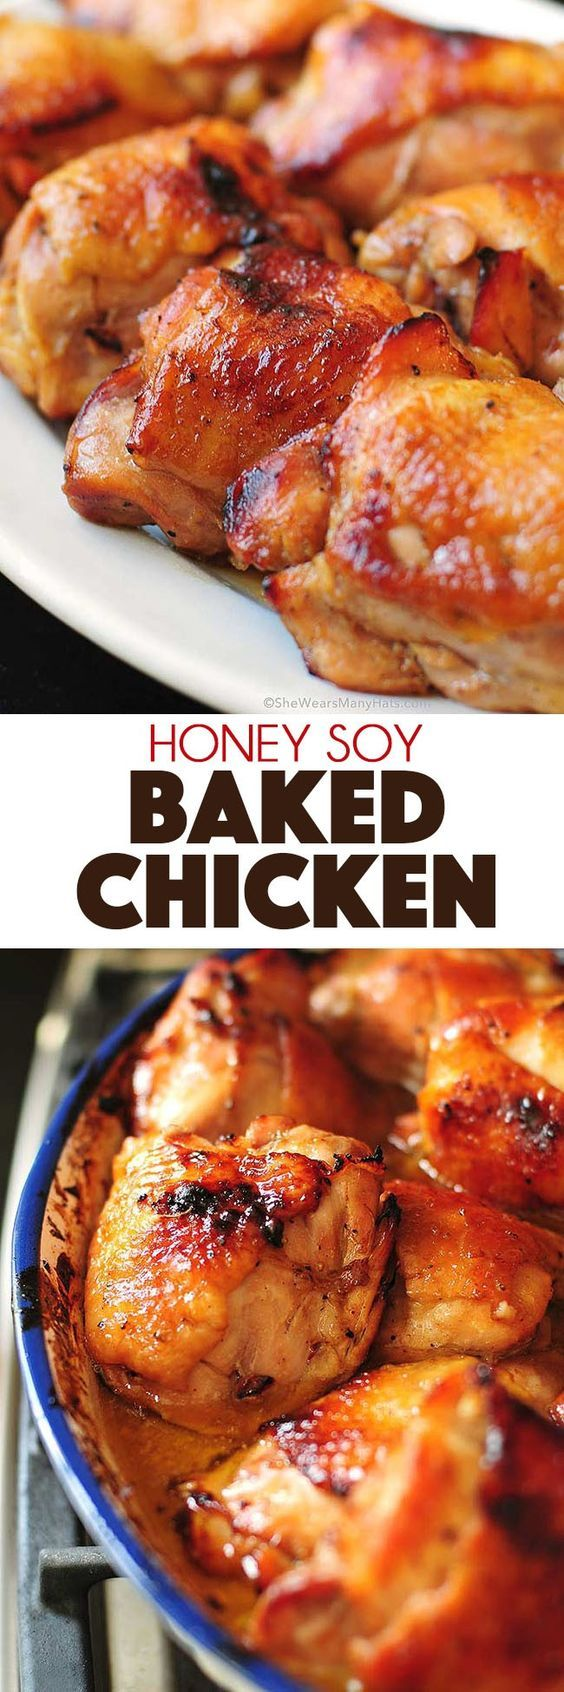 Honey Soy Baked Chicken Recipe Baked Chicken Recipes